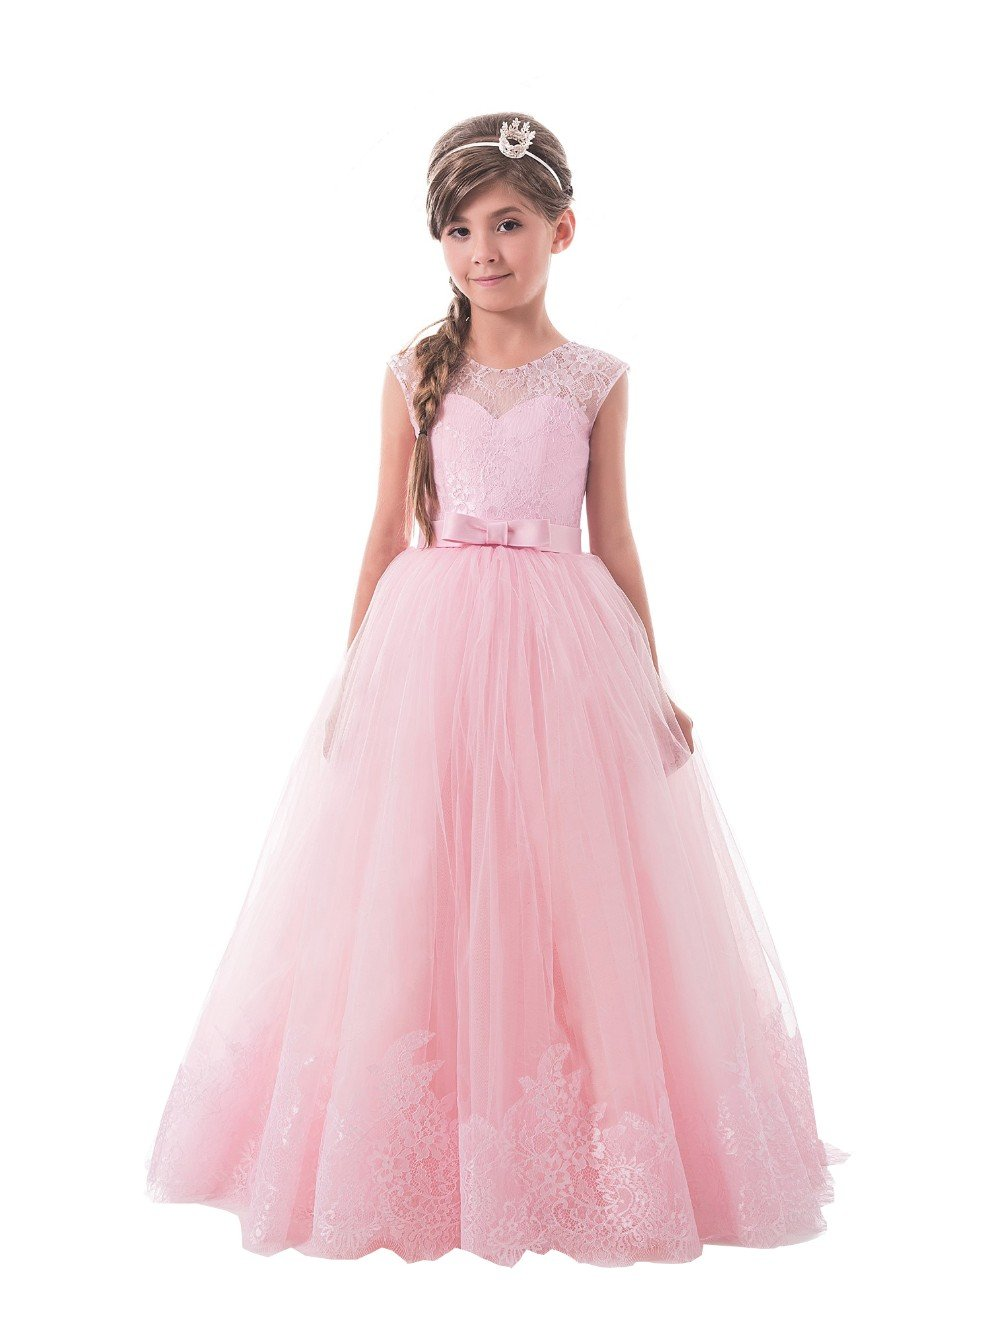 Lilis Lovely Princess Tulle Lace Appliques Flower Girls Dresses Sleeveless Pageant Gowns